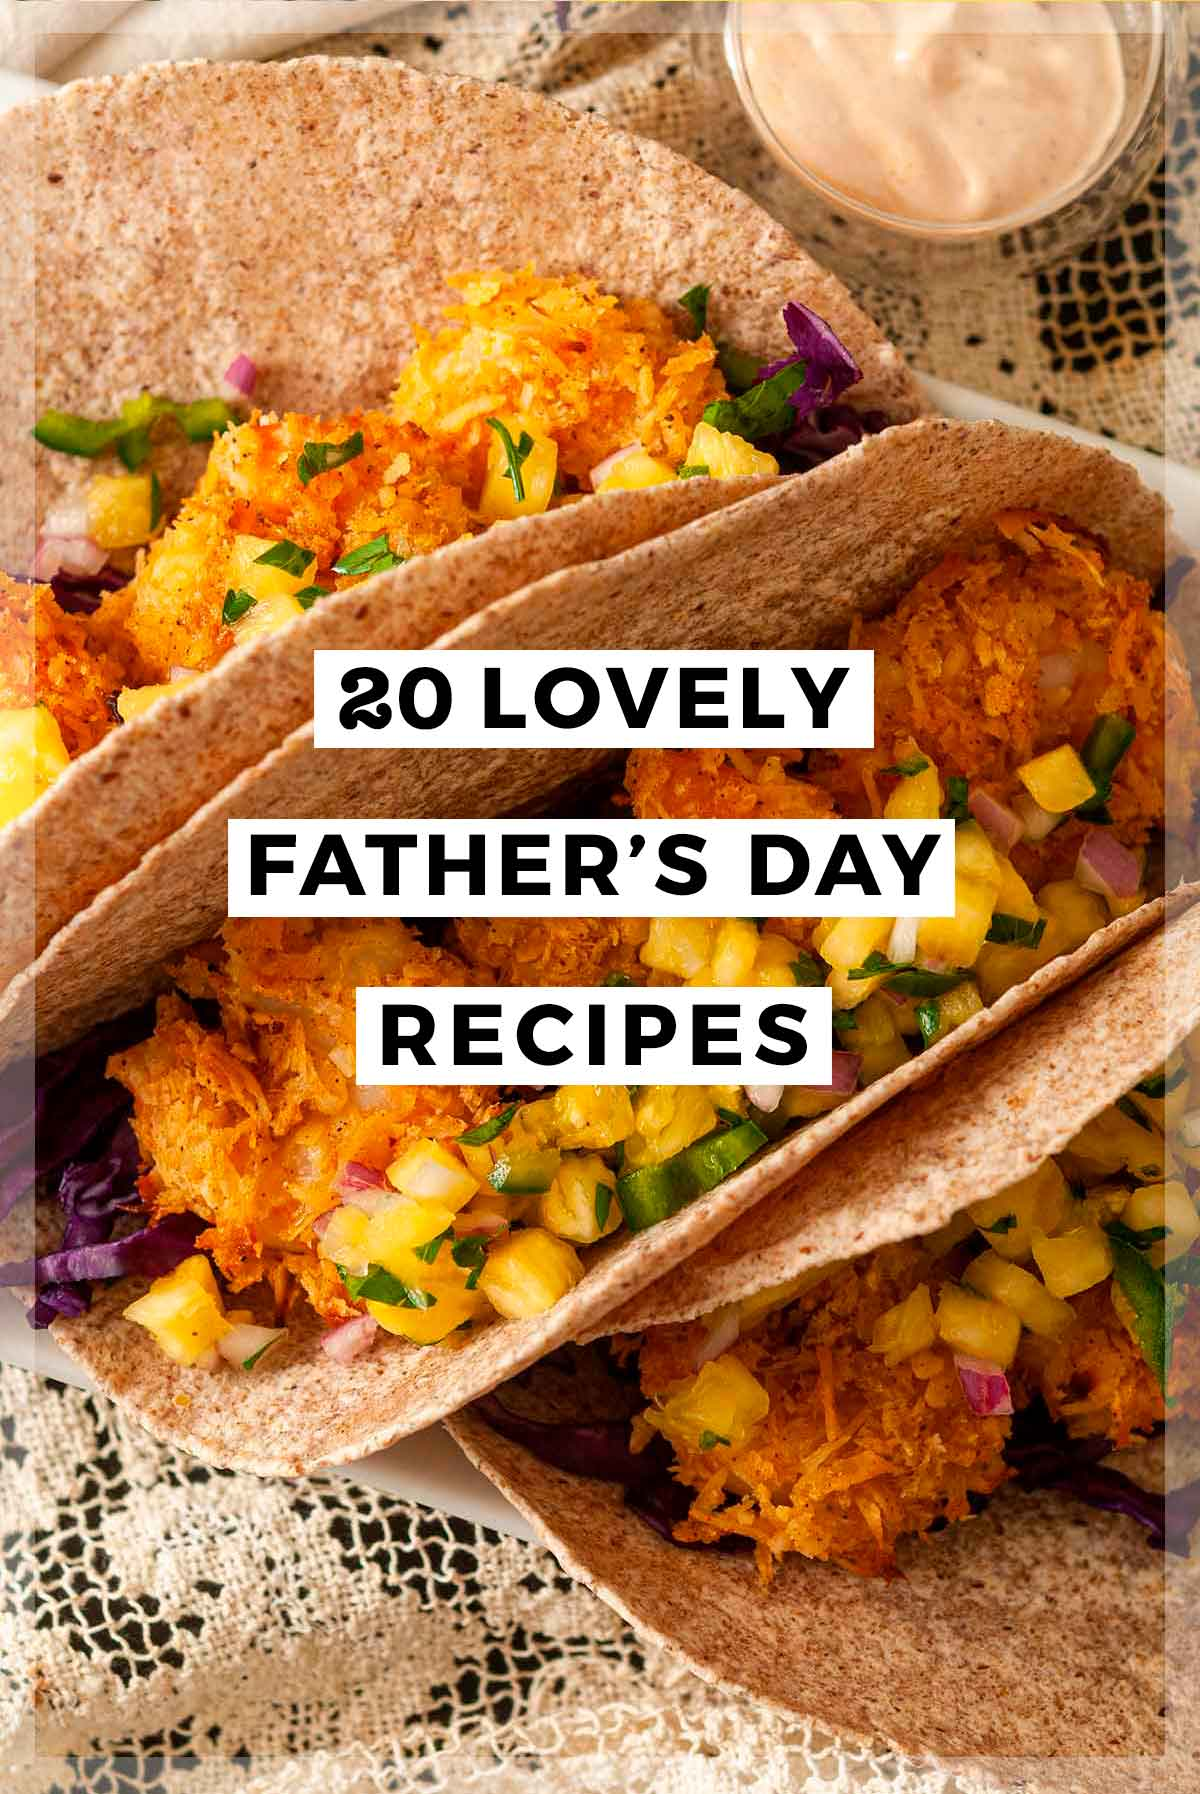 """Shrimp tacos on a lace tablecloth with a title that says """"20 Lovely Father's Day Recipes."""""""